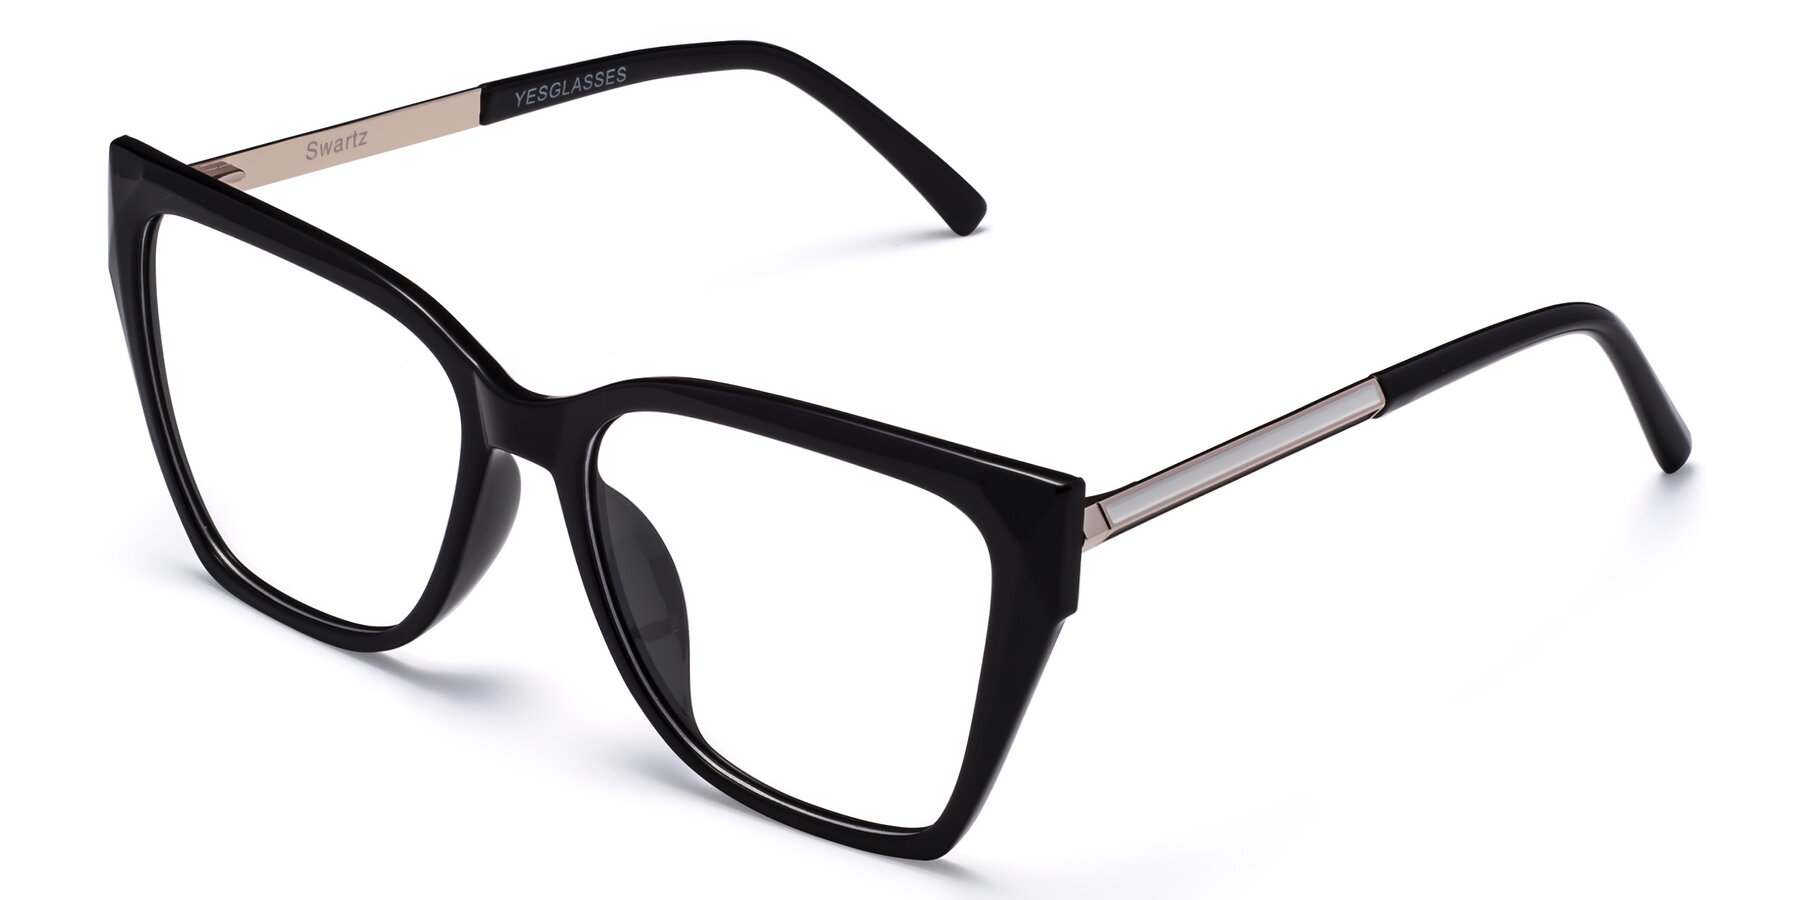 Angle of Swartz in Black with Clear Eyeglass Lenses